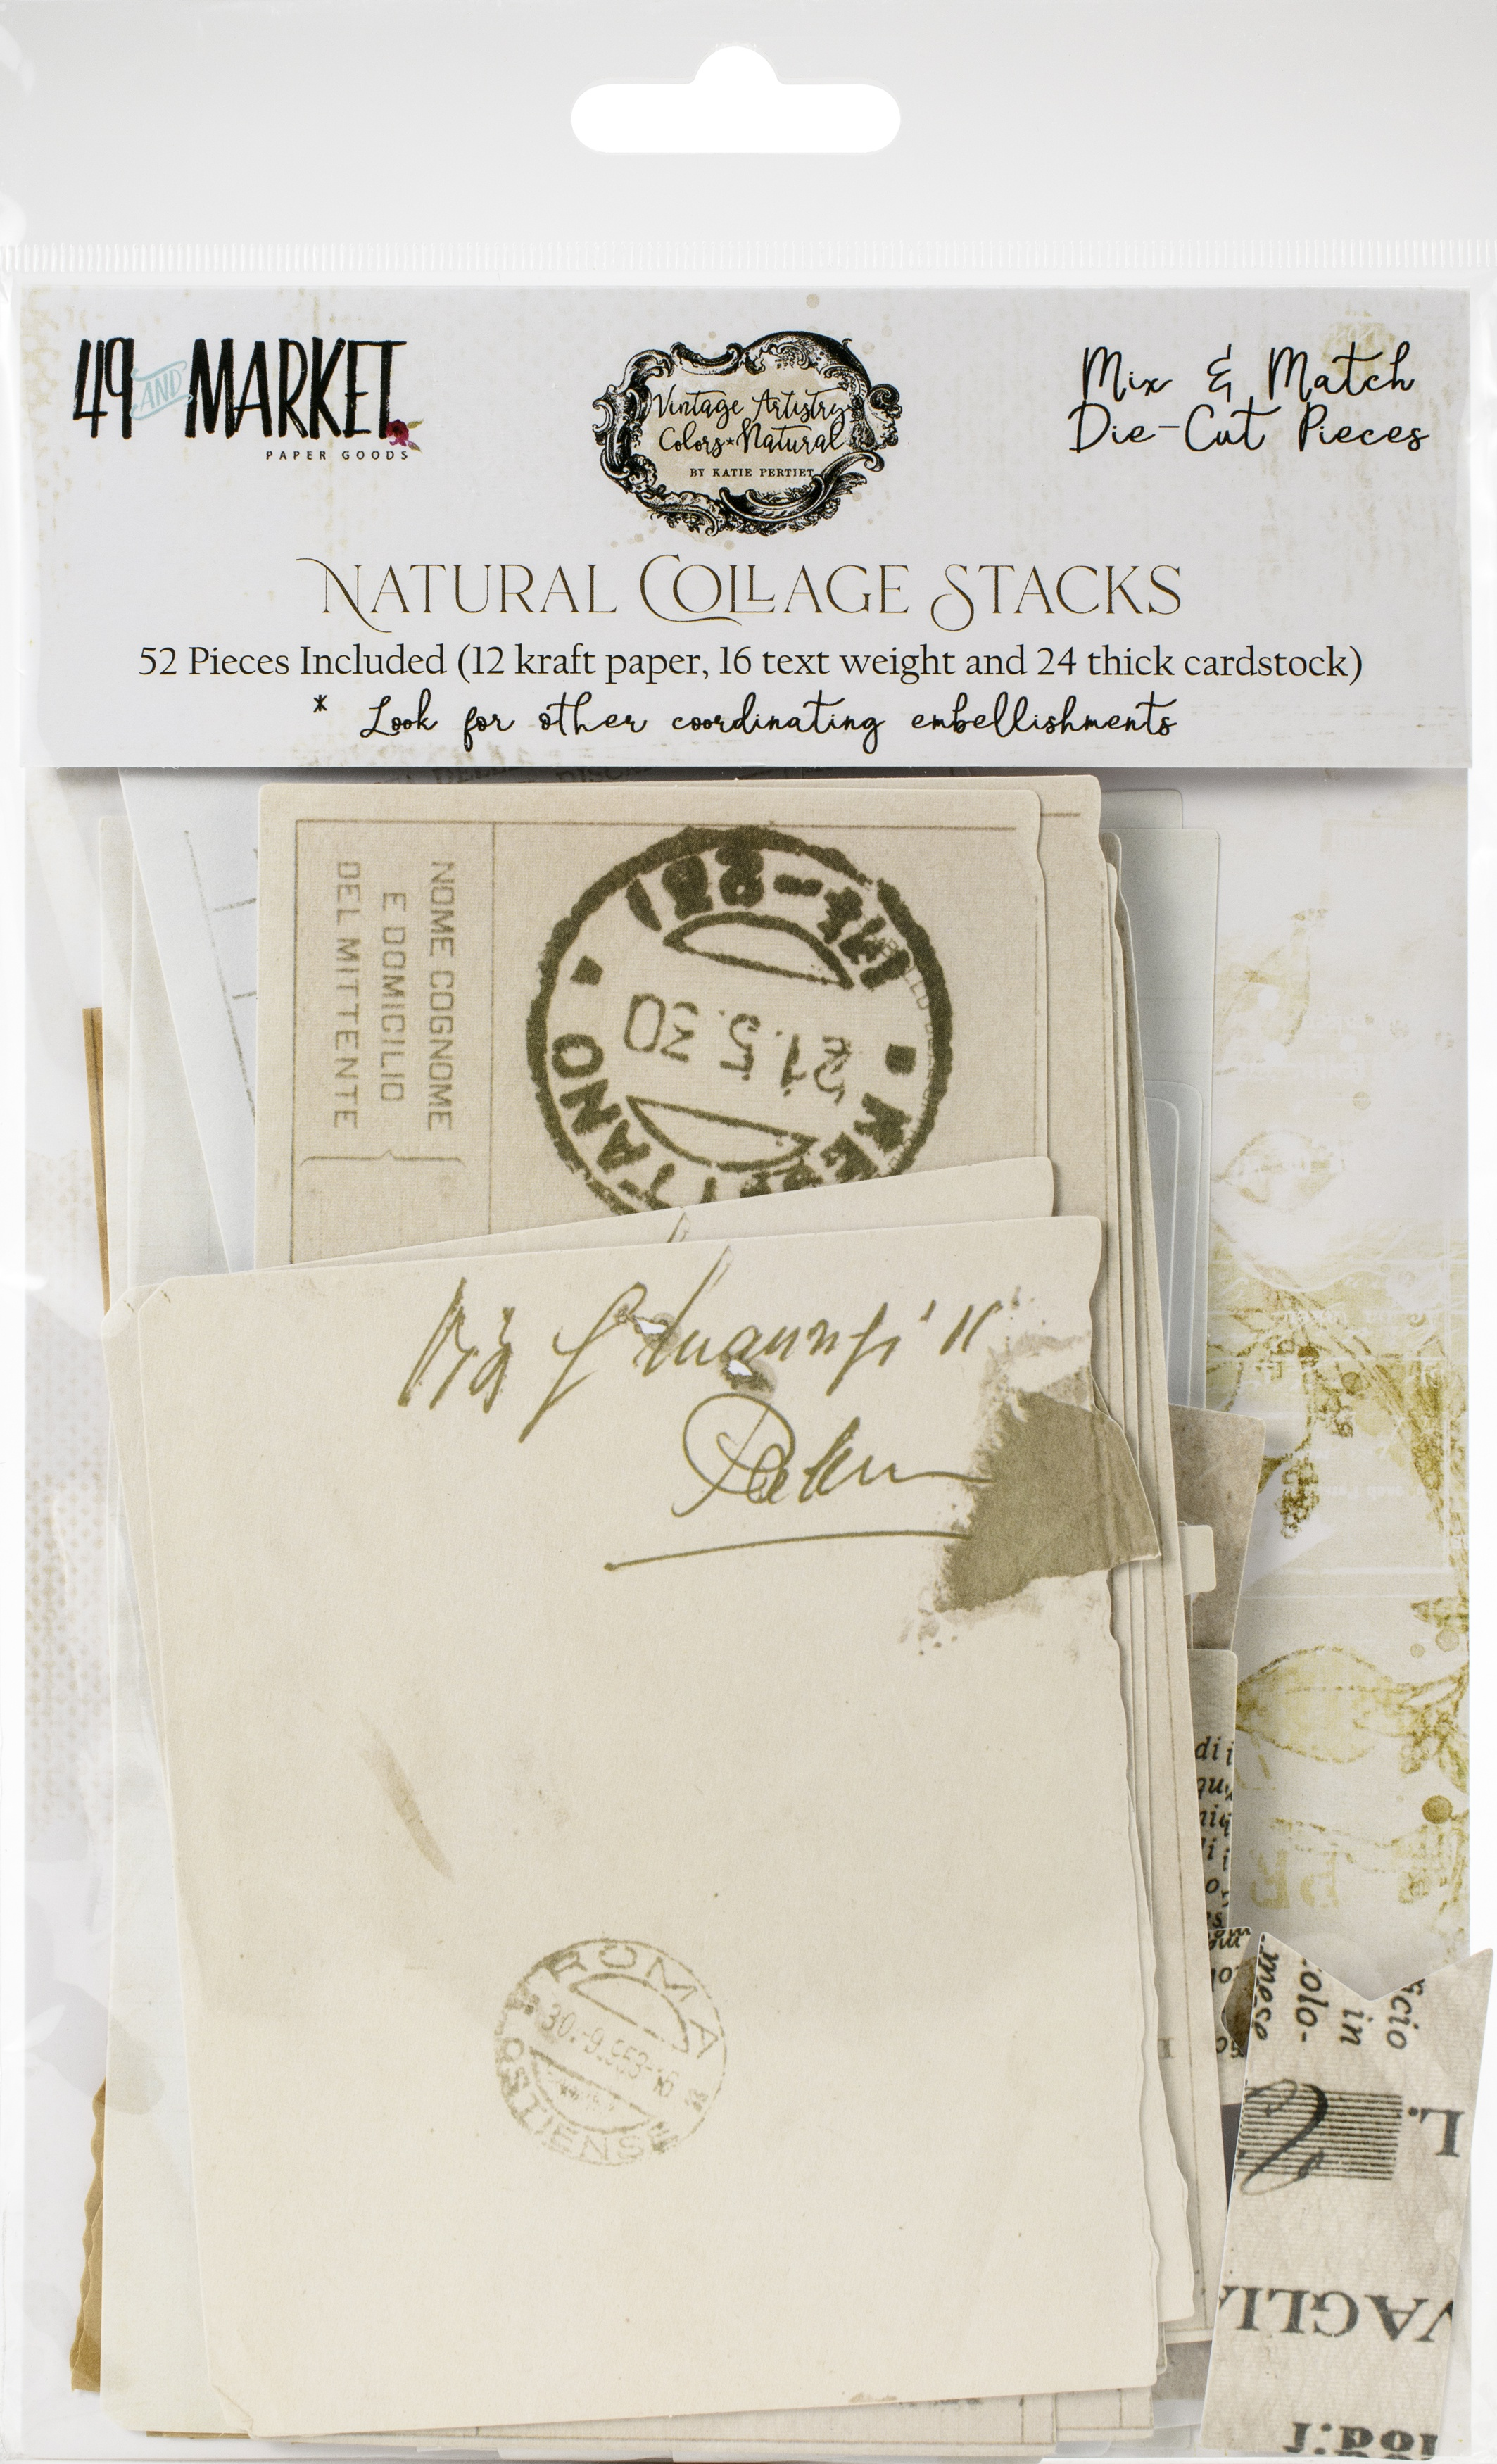 49 And Market - Natural Collage Stacks